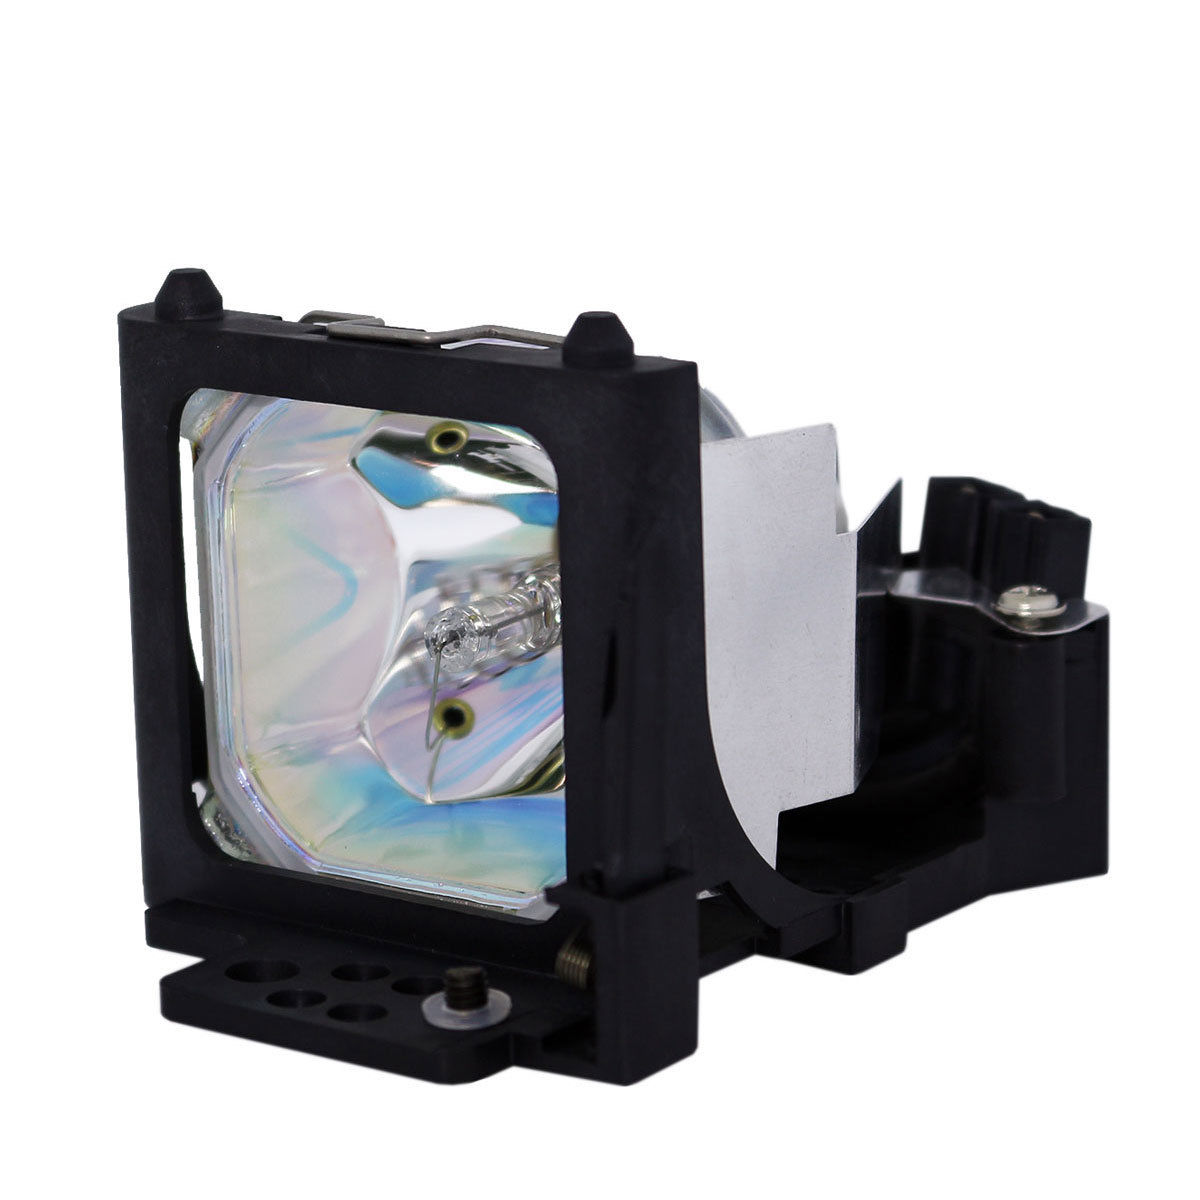 Projector Lamp bulb DT00521 DT-00521 for HITACHI CP-X275 CP-X275A CP-X275W CP-X327 ED-X3250 ED-X3270 ED-X3270A With Housing dt00461 dt00511 dt00521 dt00401